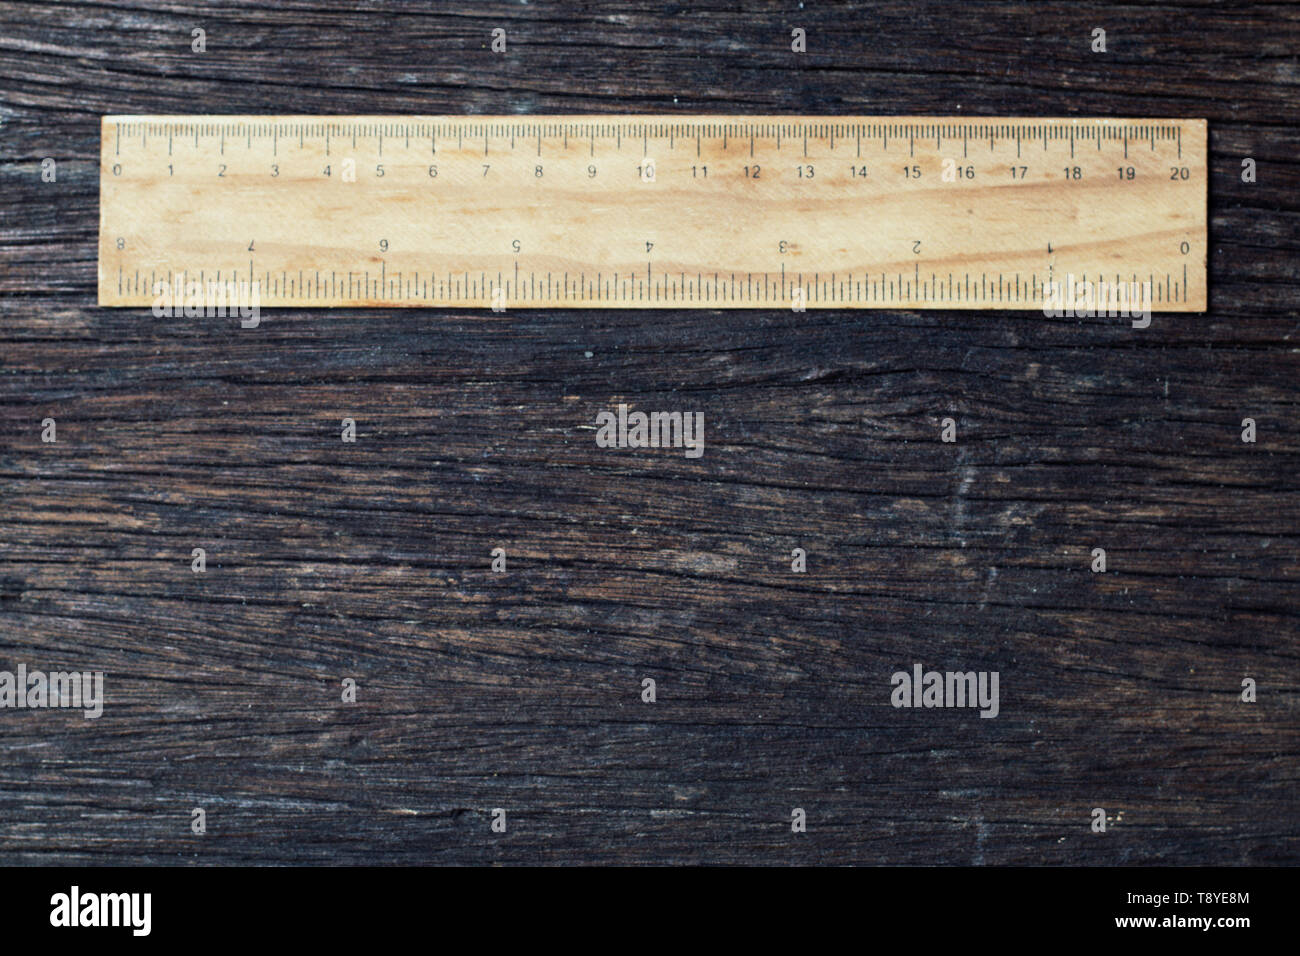 wooden rulers in centimeter and inch on old wood rustic background nature eco environment concept idea - Stock Image